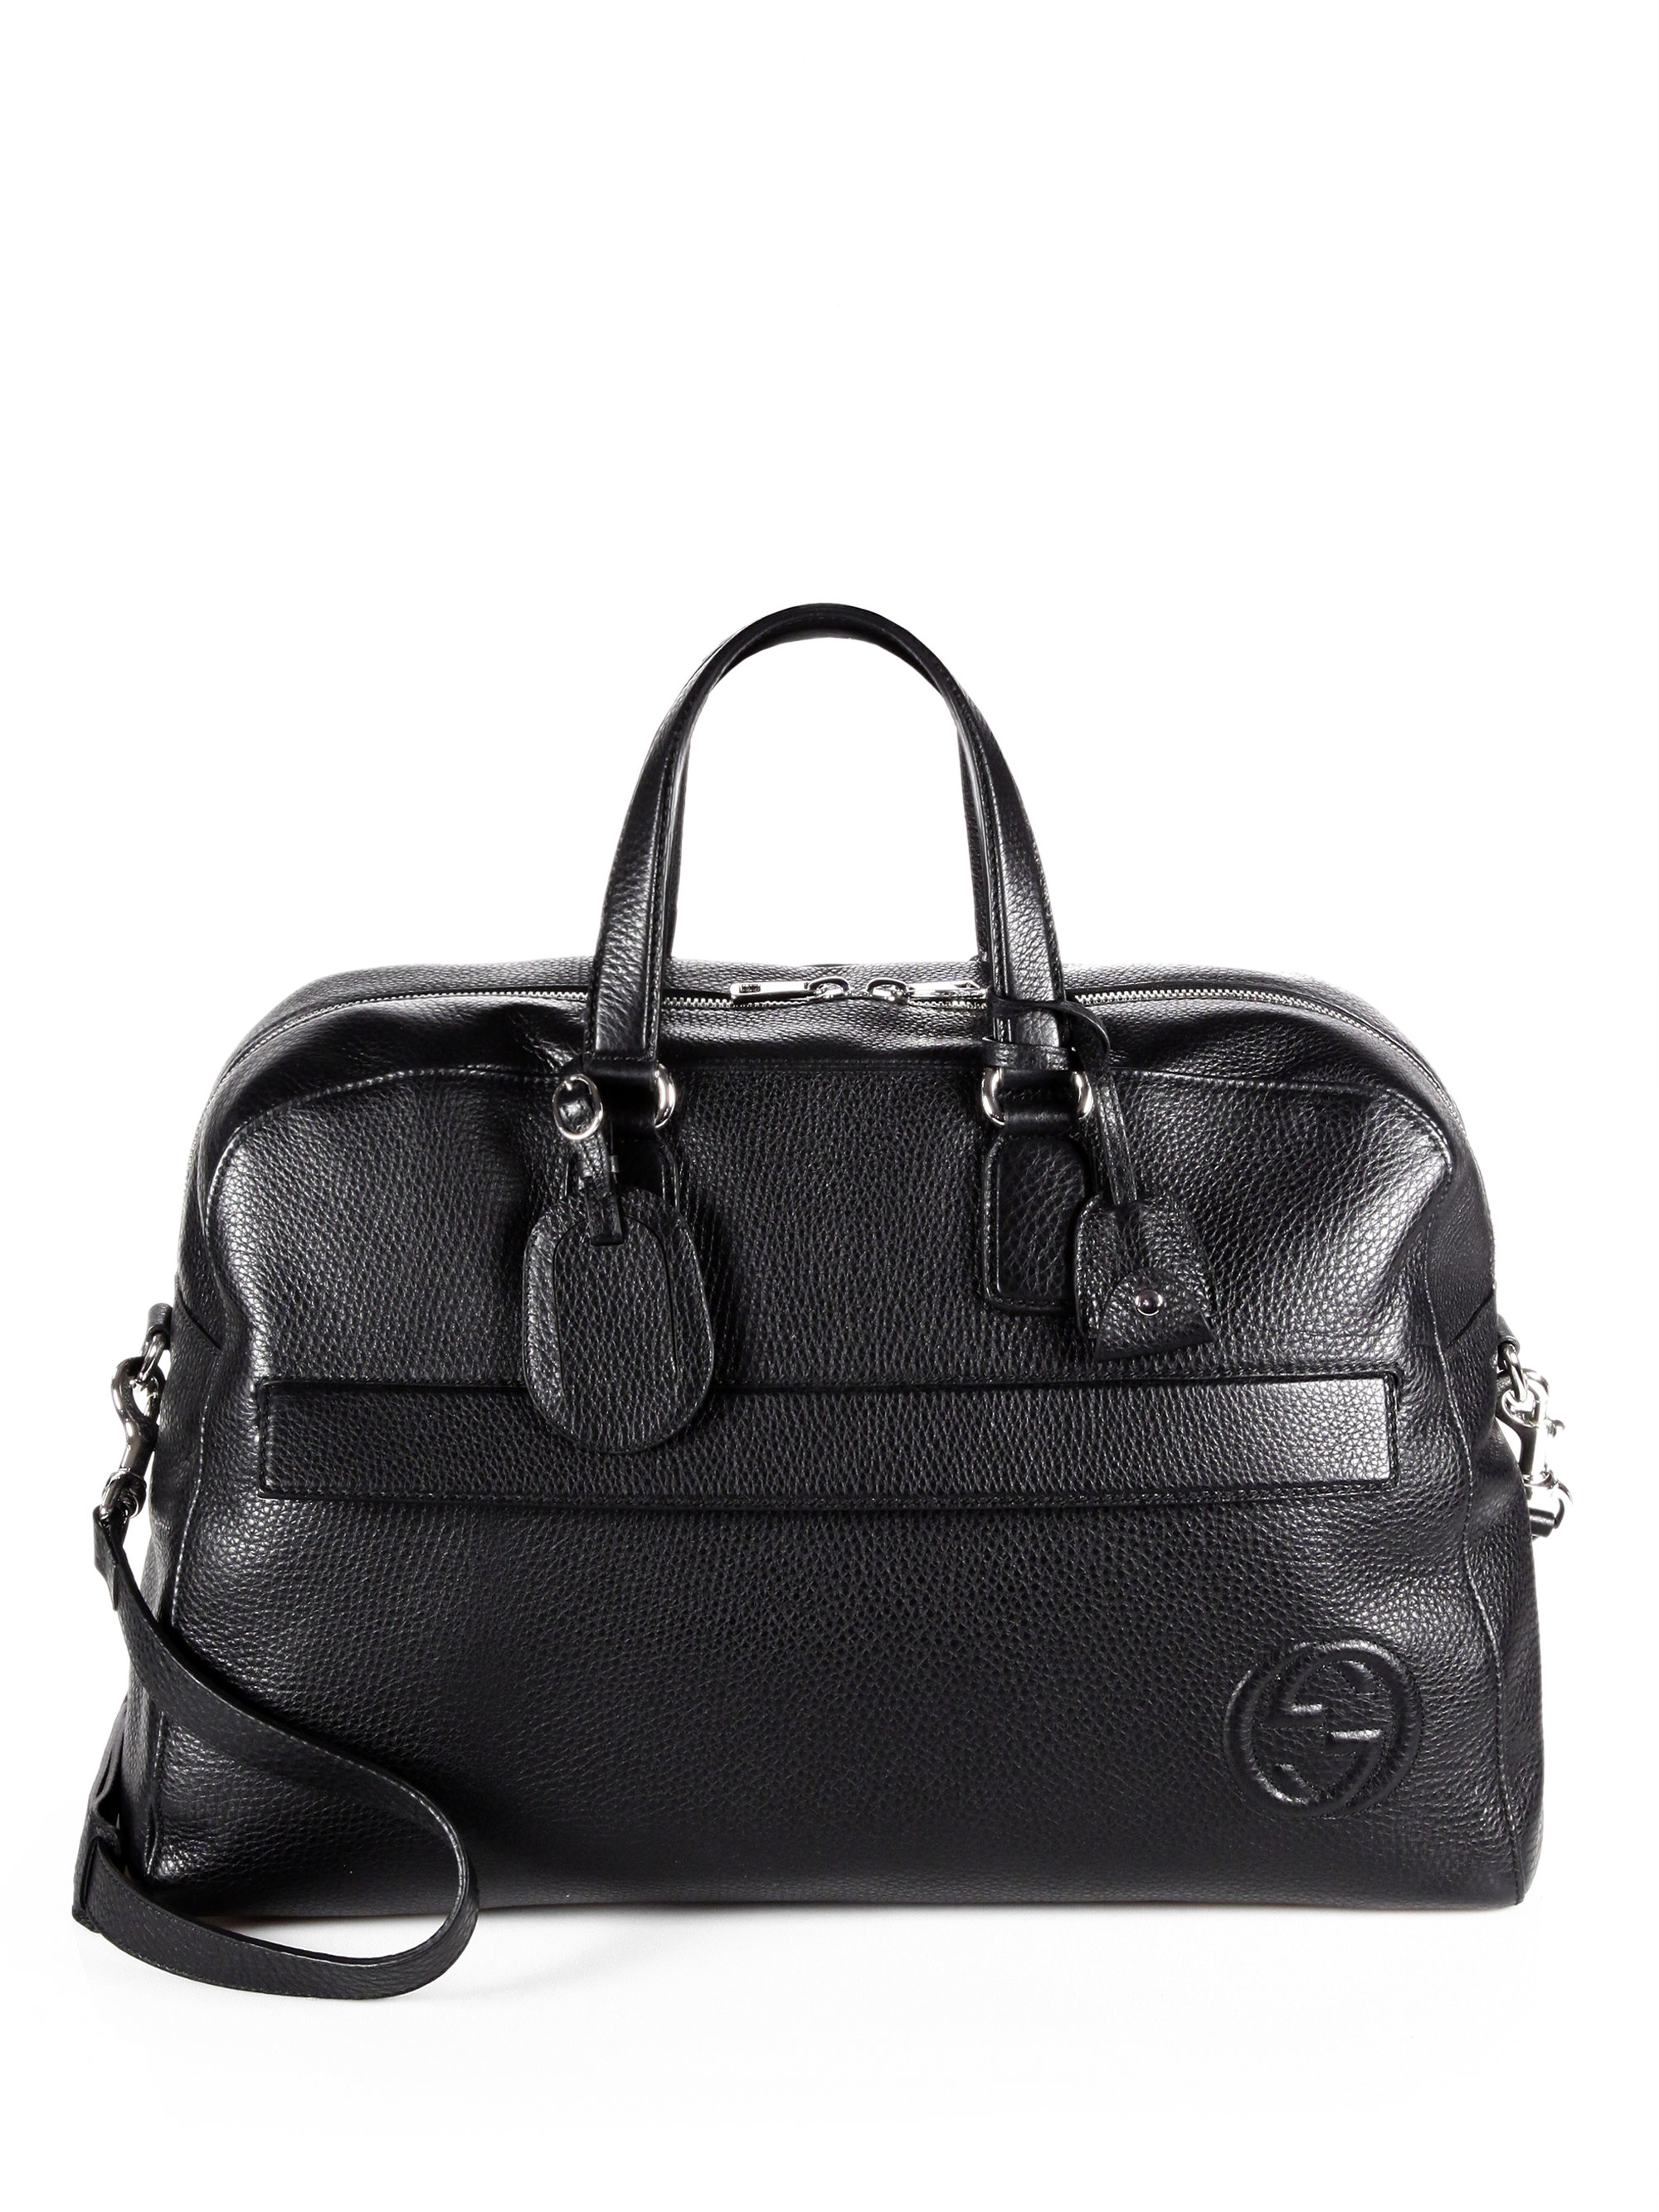 9cca729b75ecf5 Gucci Soho Leather Duffel Bag in Black for Men - Lyst